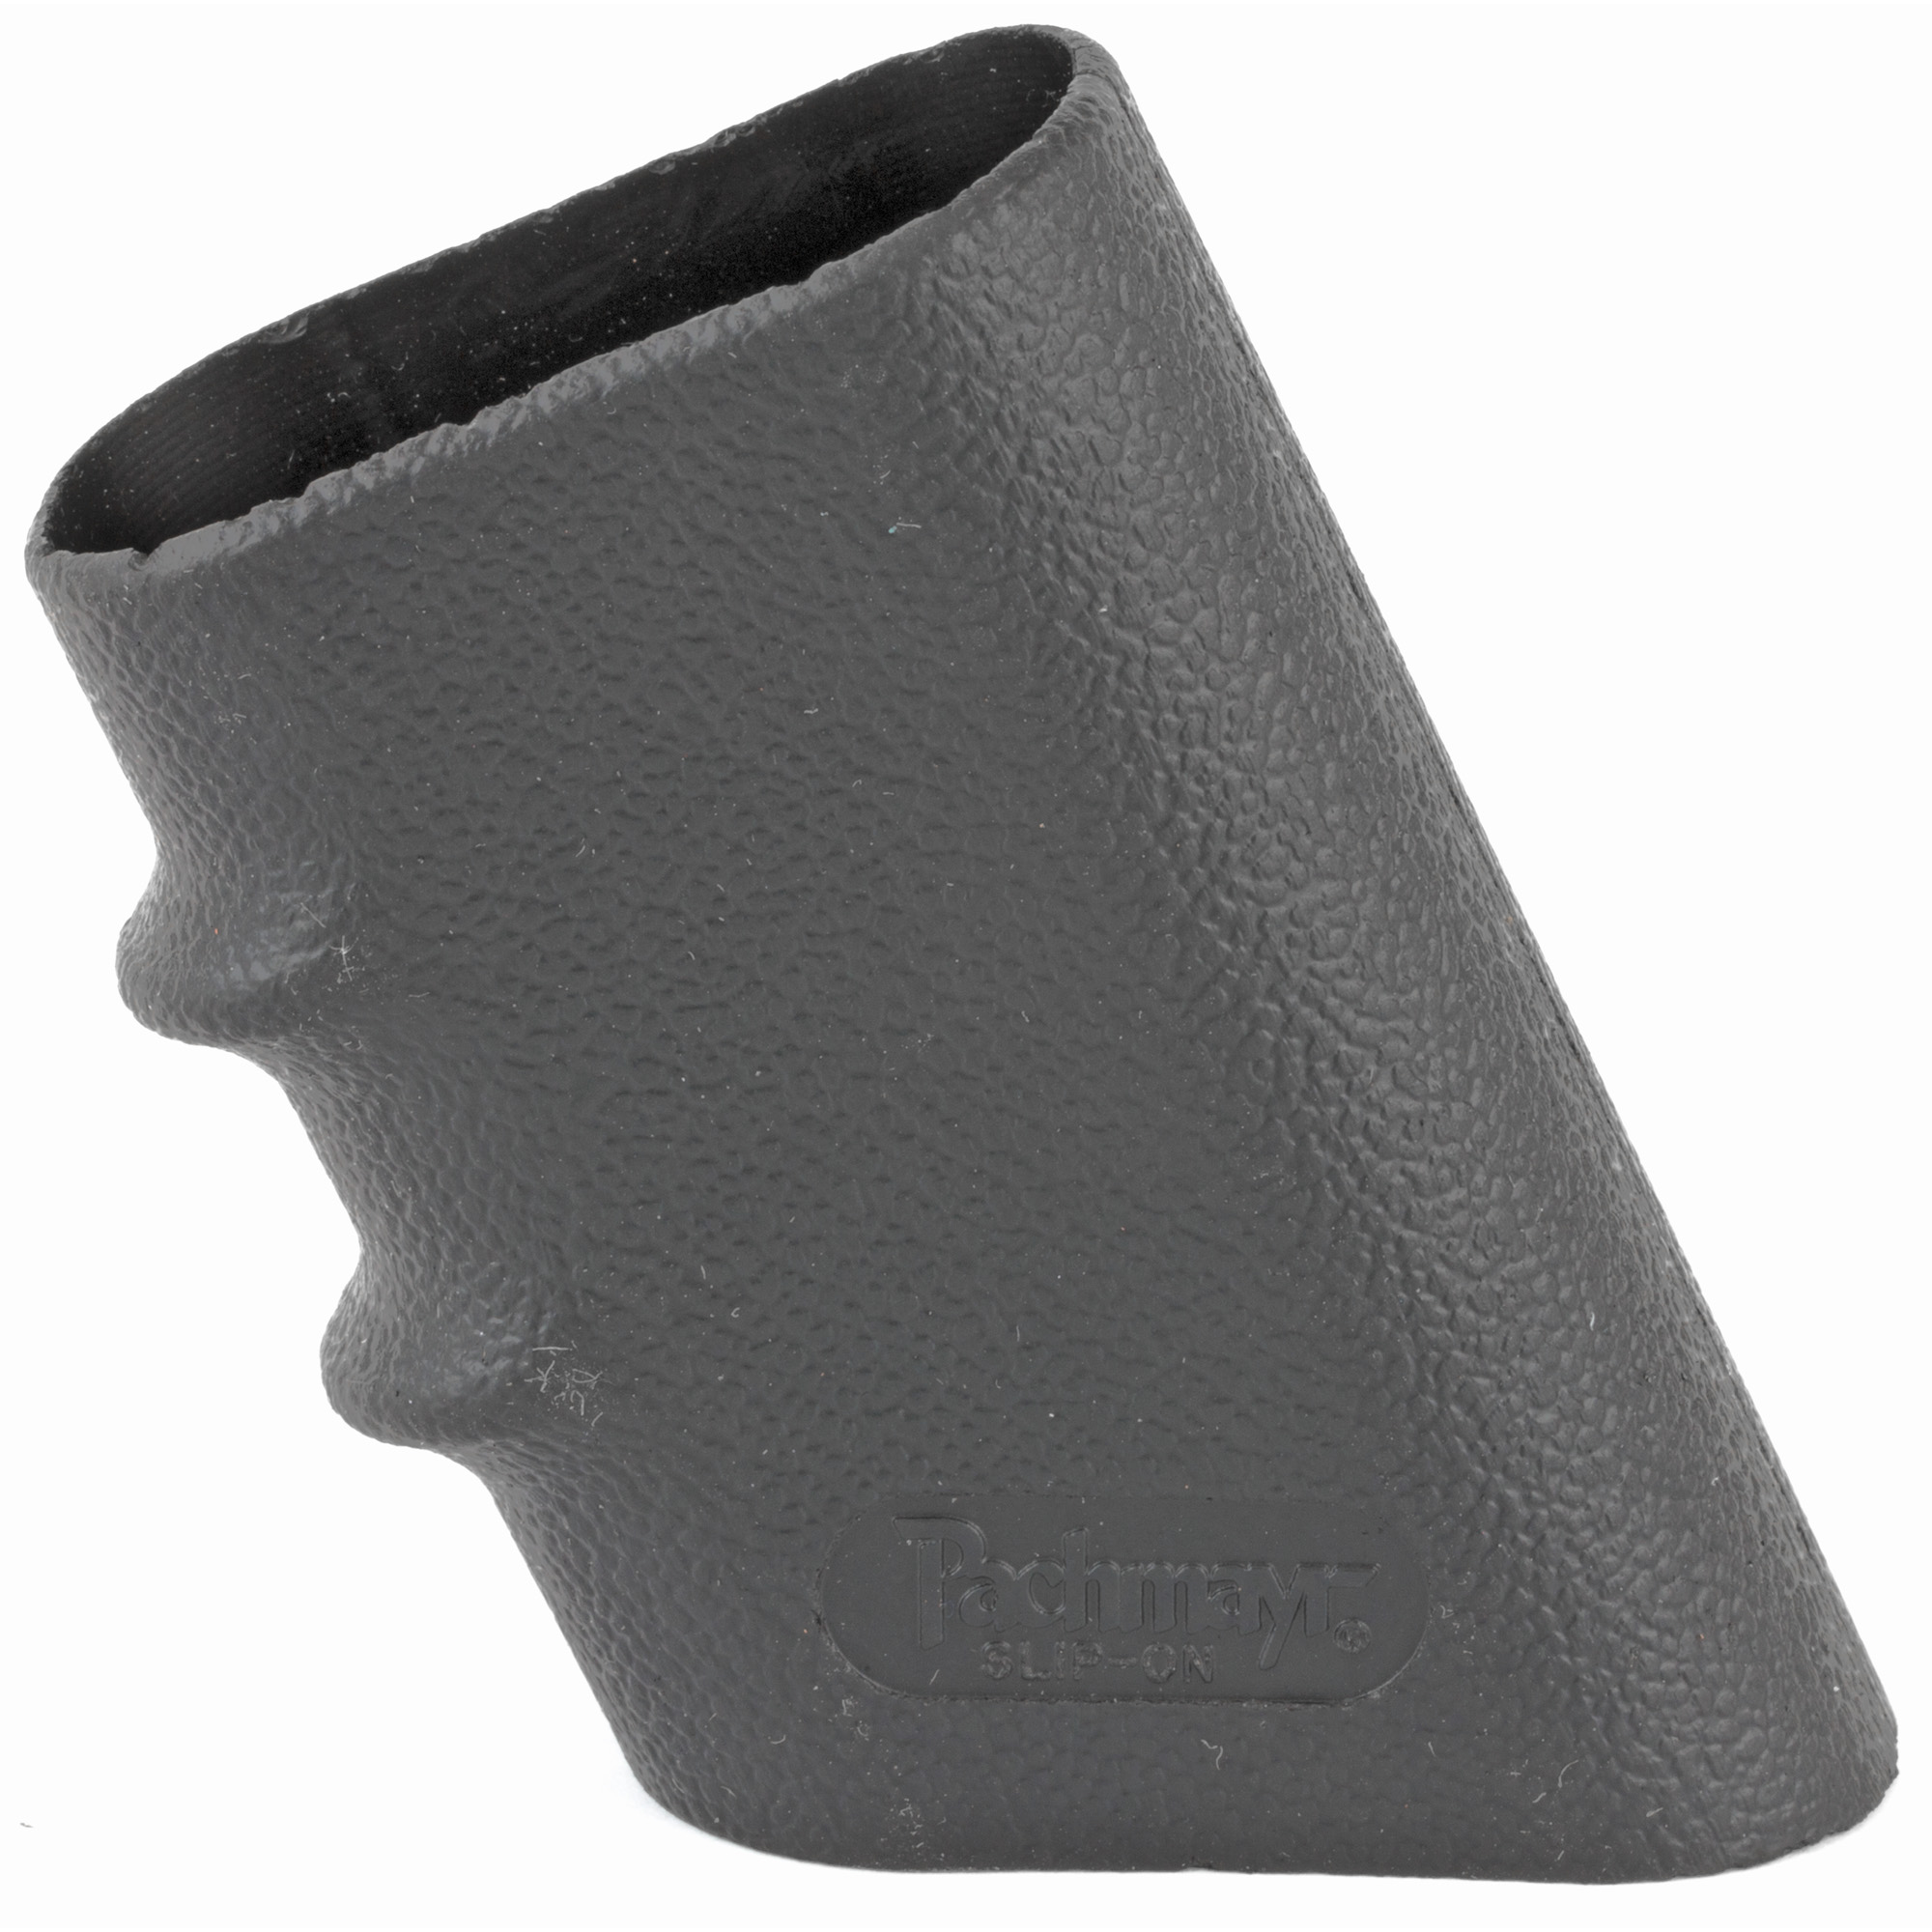 Made from a special rubber formula that gives superior stretch yet maintains tight fit on almost all gun frames. Designed for easy installation and available in five sizes to eliminate the need to cut the grip to fit. Five models cover the range of semi-auto pistol frame sizes. Four sizes come with finger grooves.